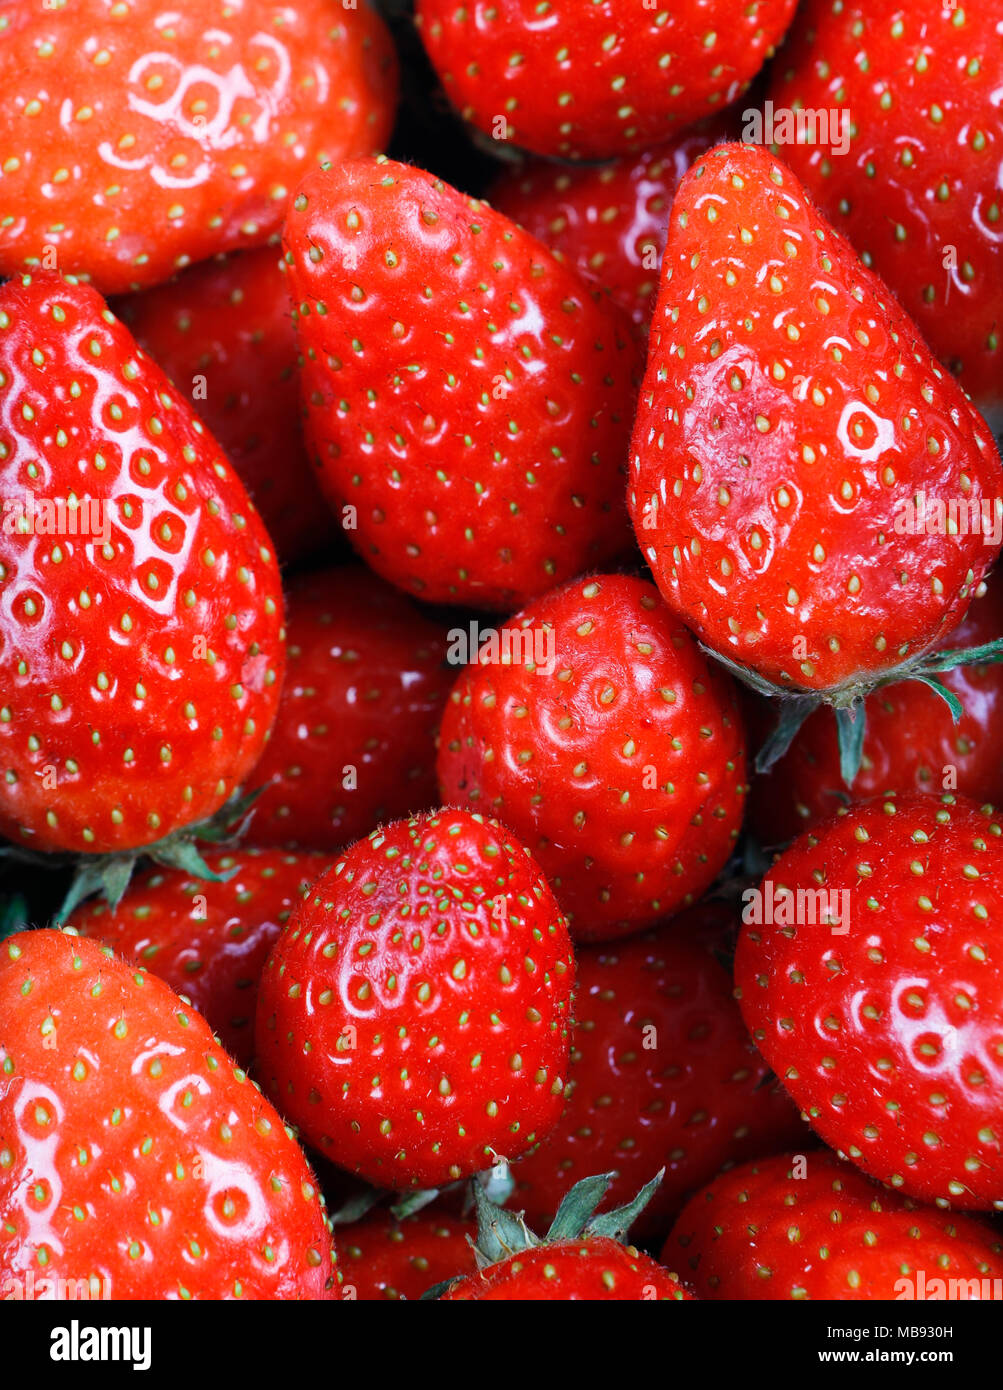 Fresh strawberries - Stock Image